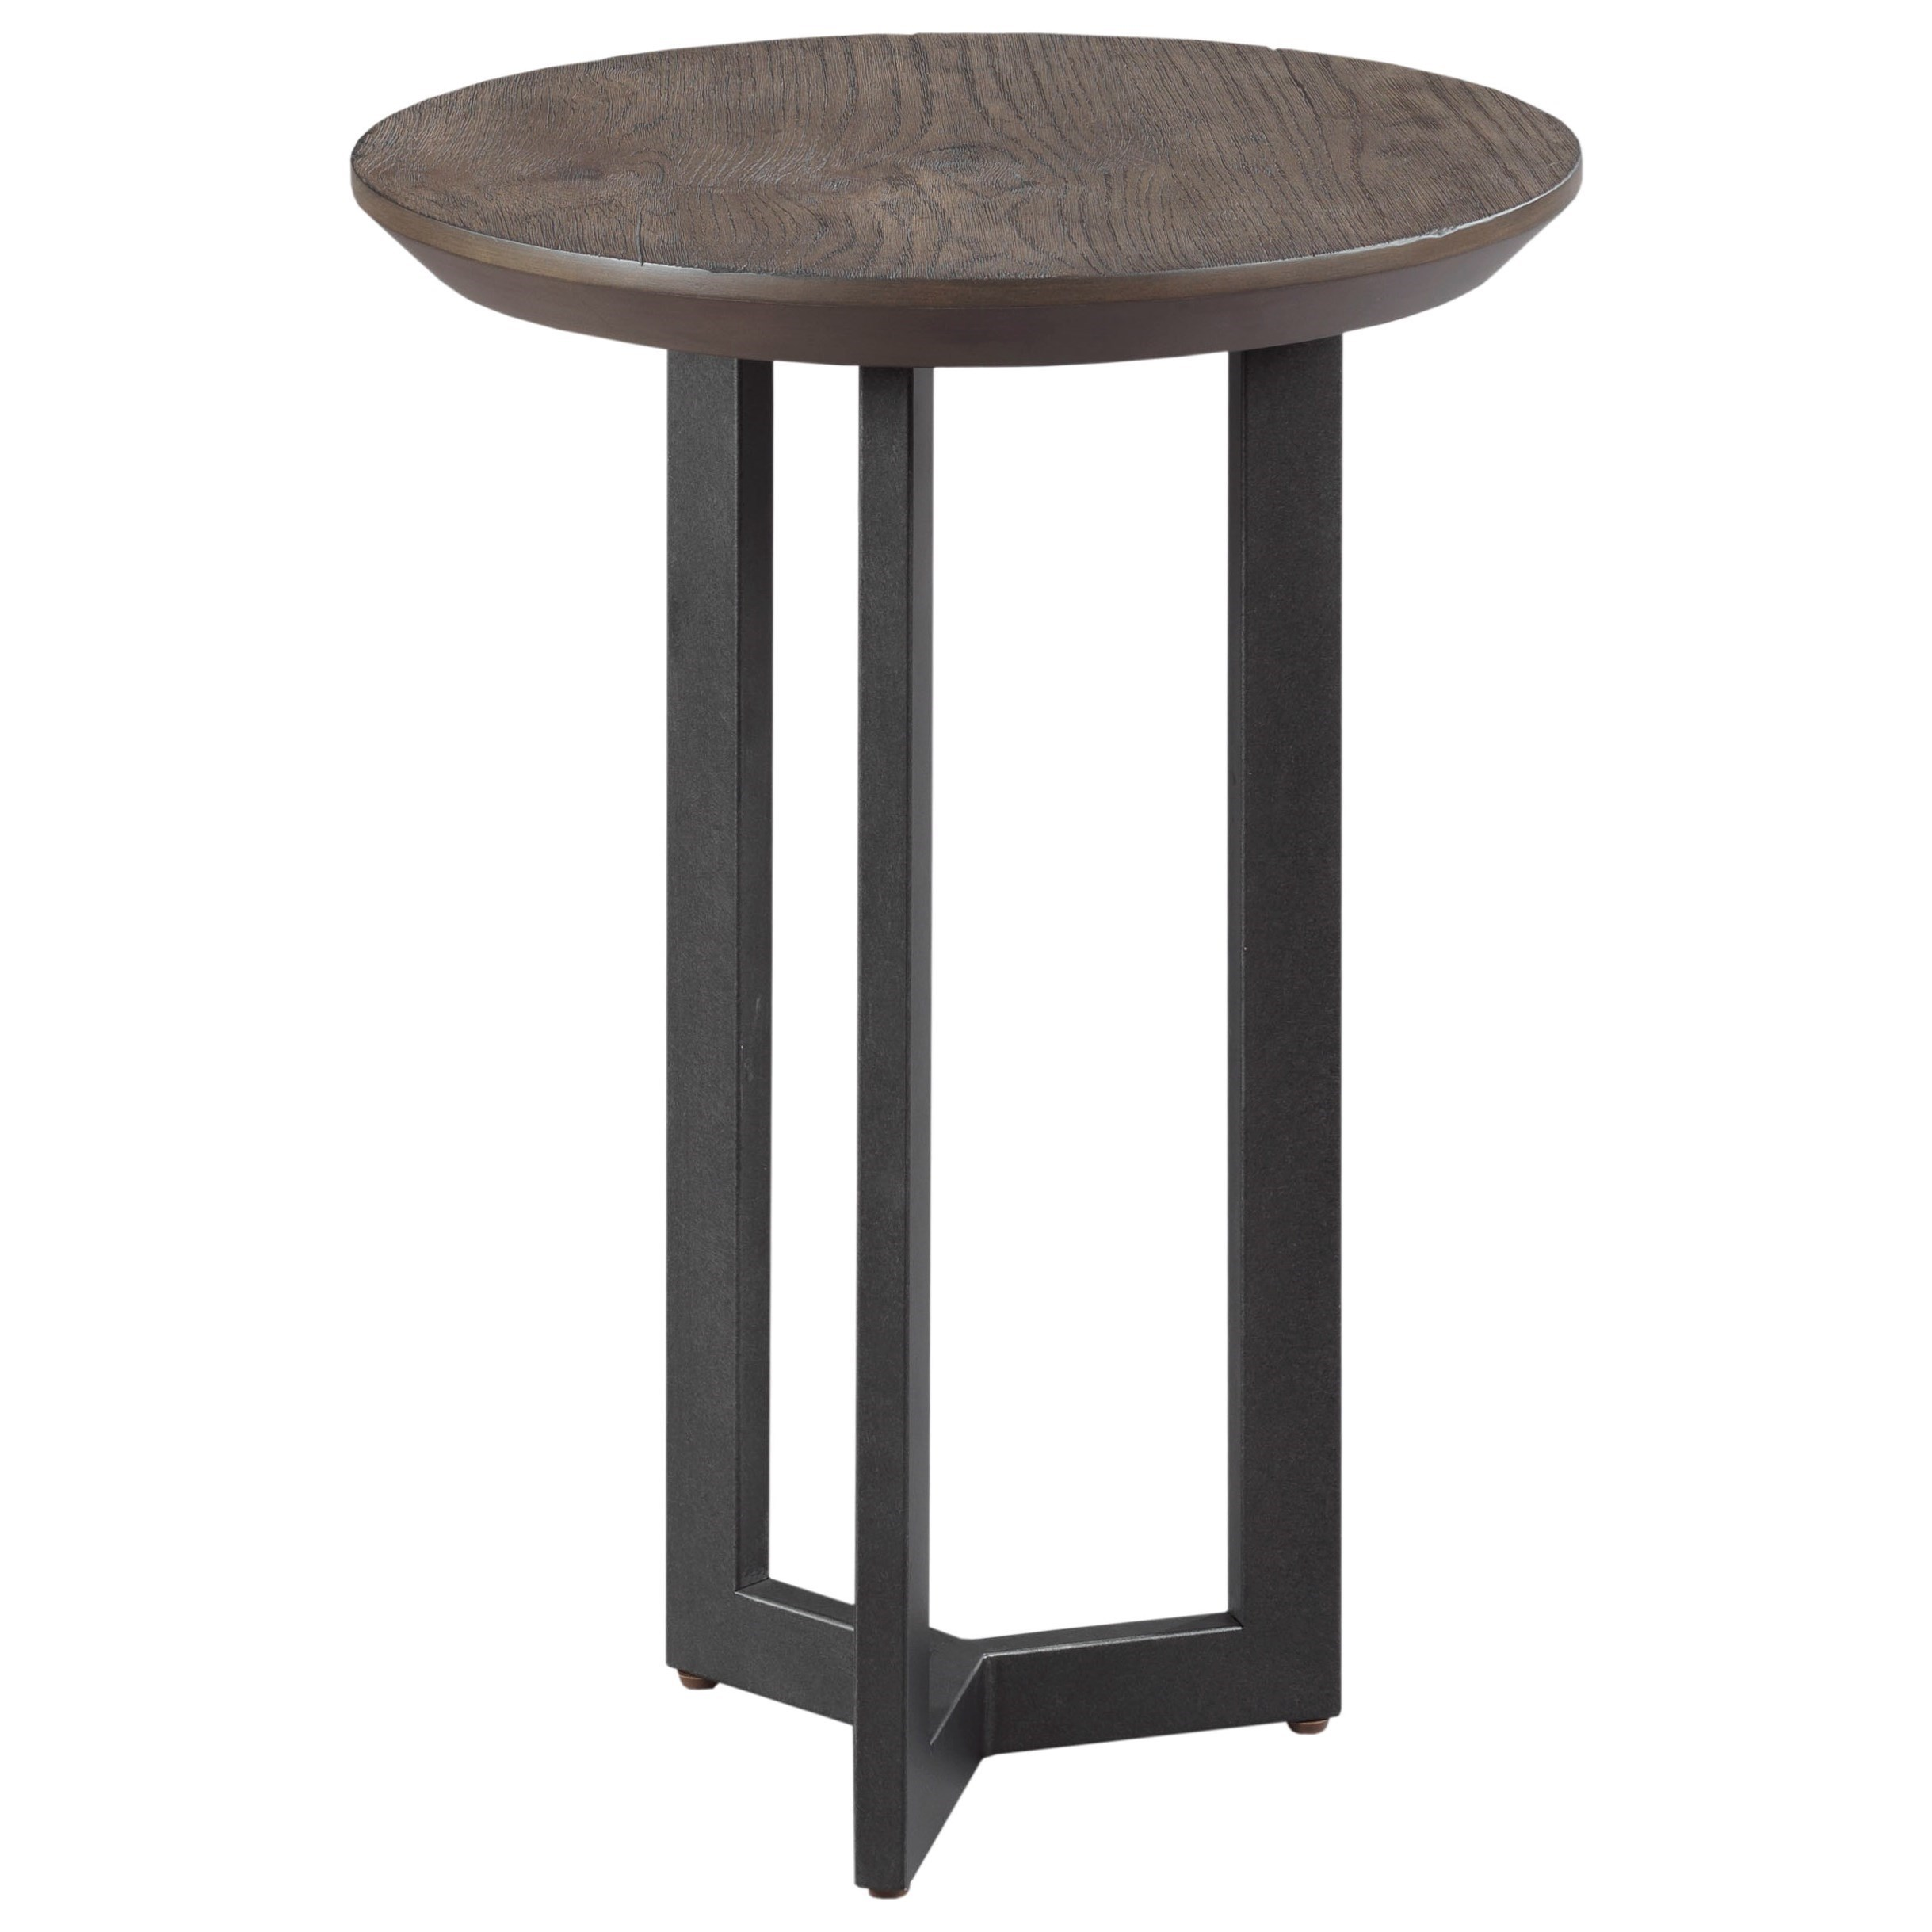 Graystone Chairside Table by Hammary at HomeWorld Furniture